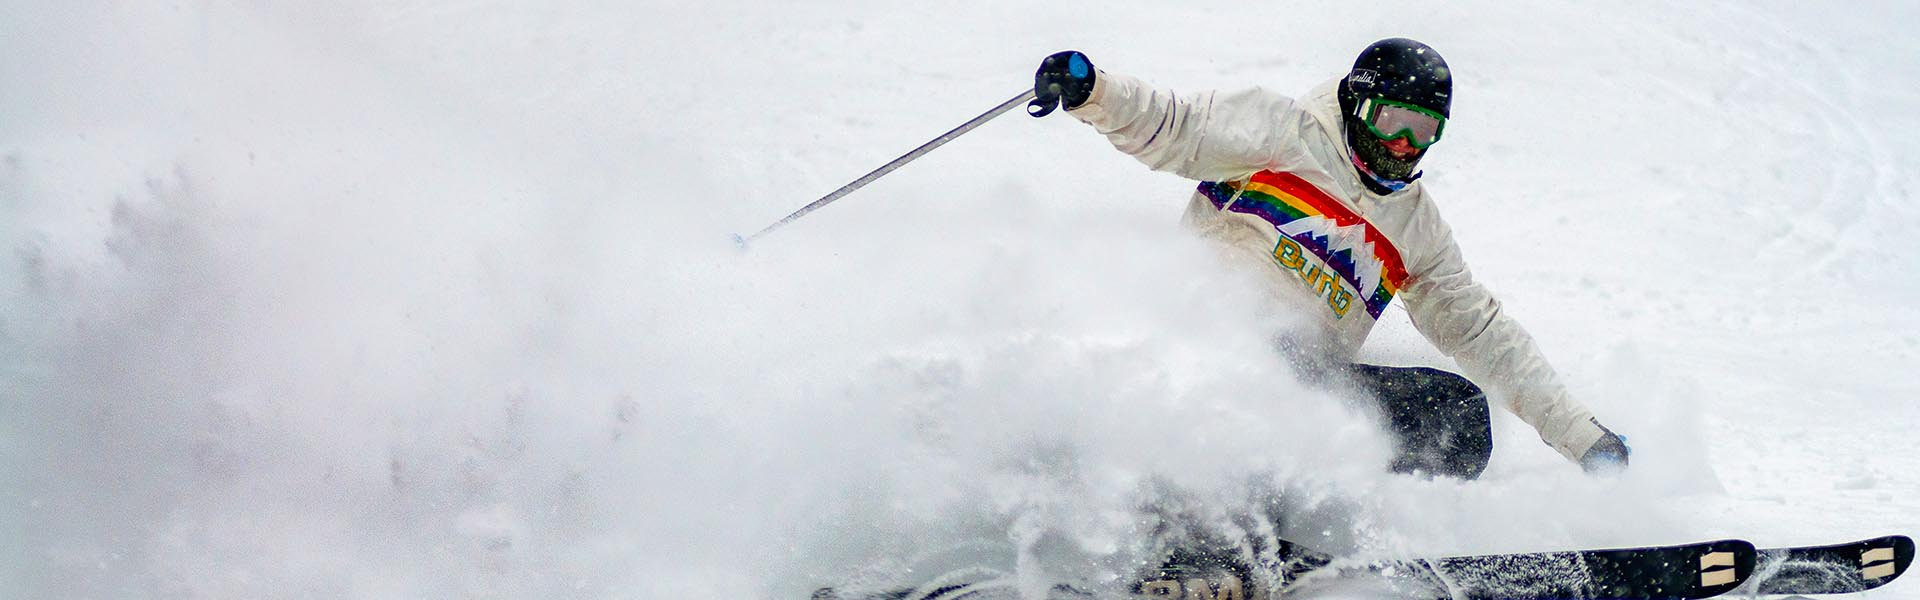 Image of skier creating snow spray